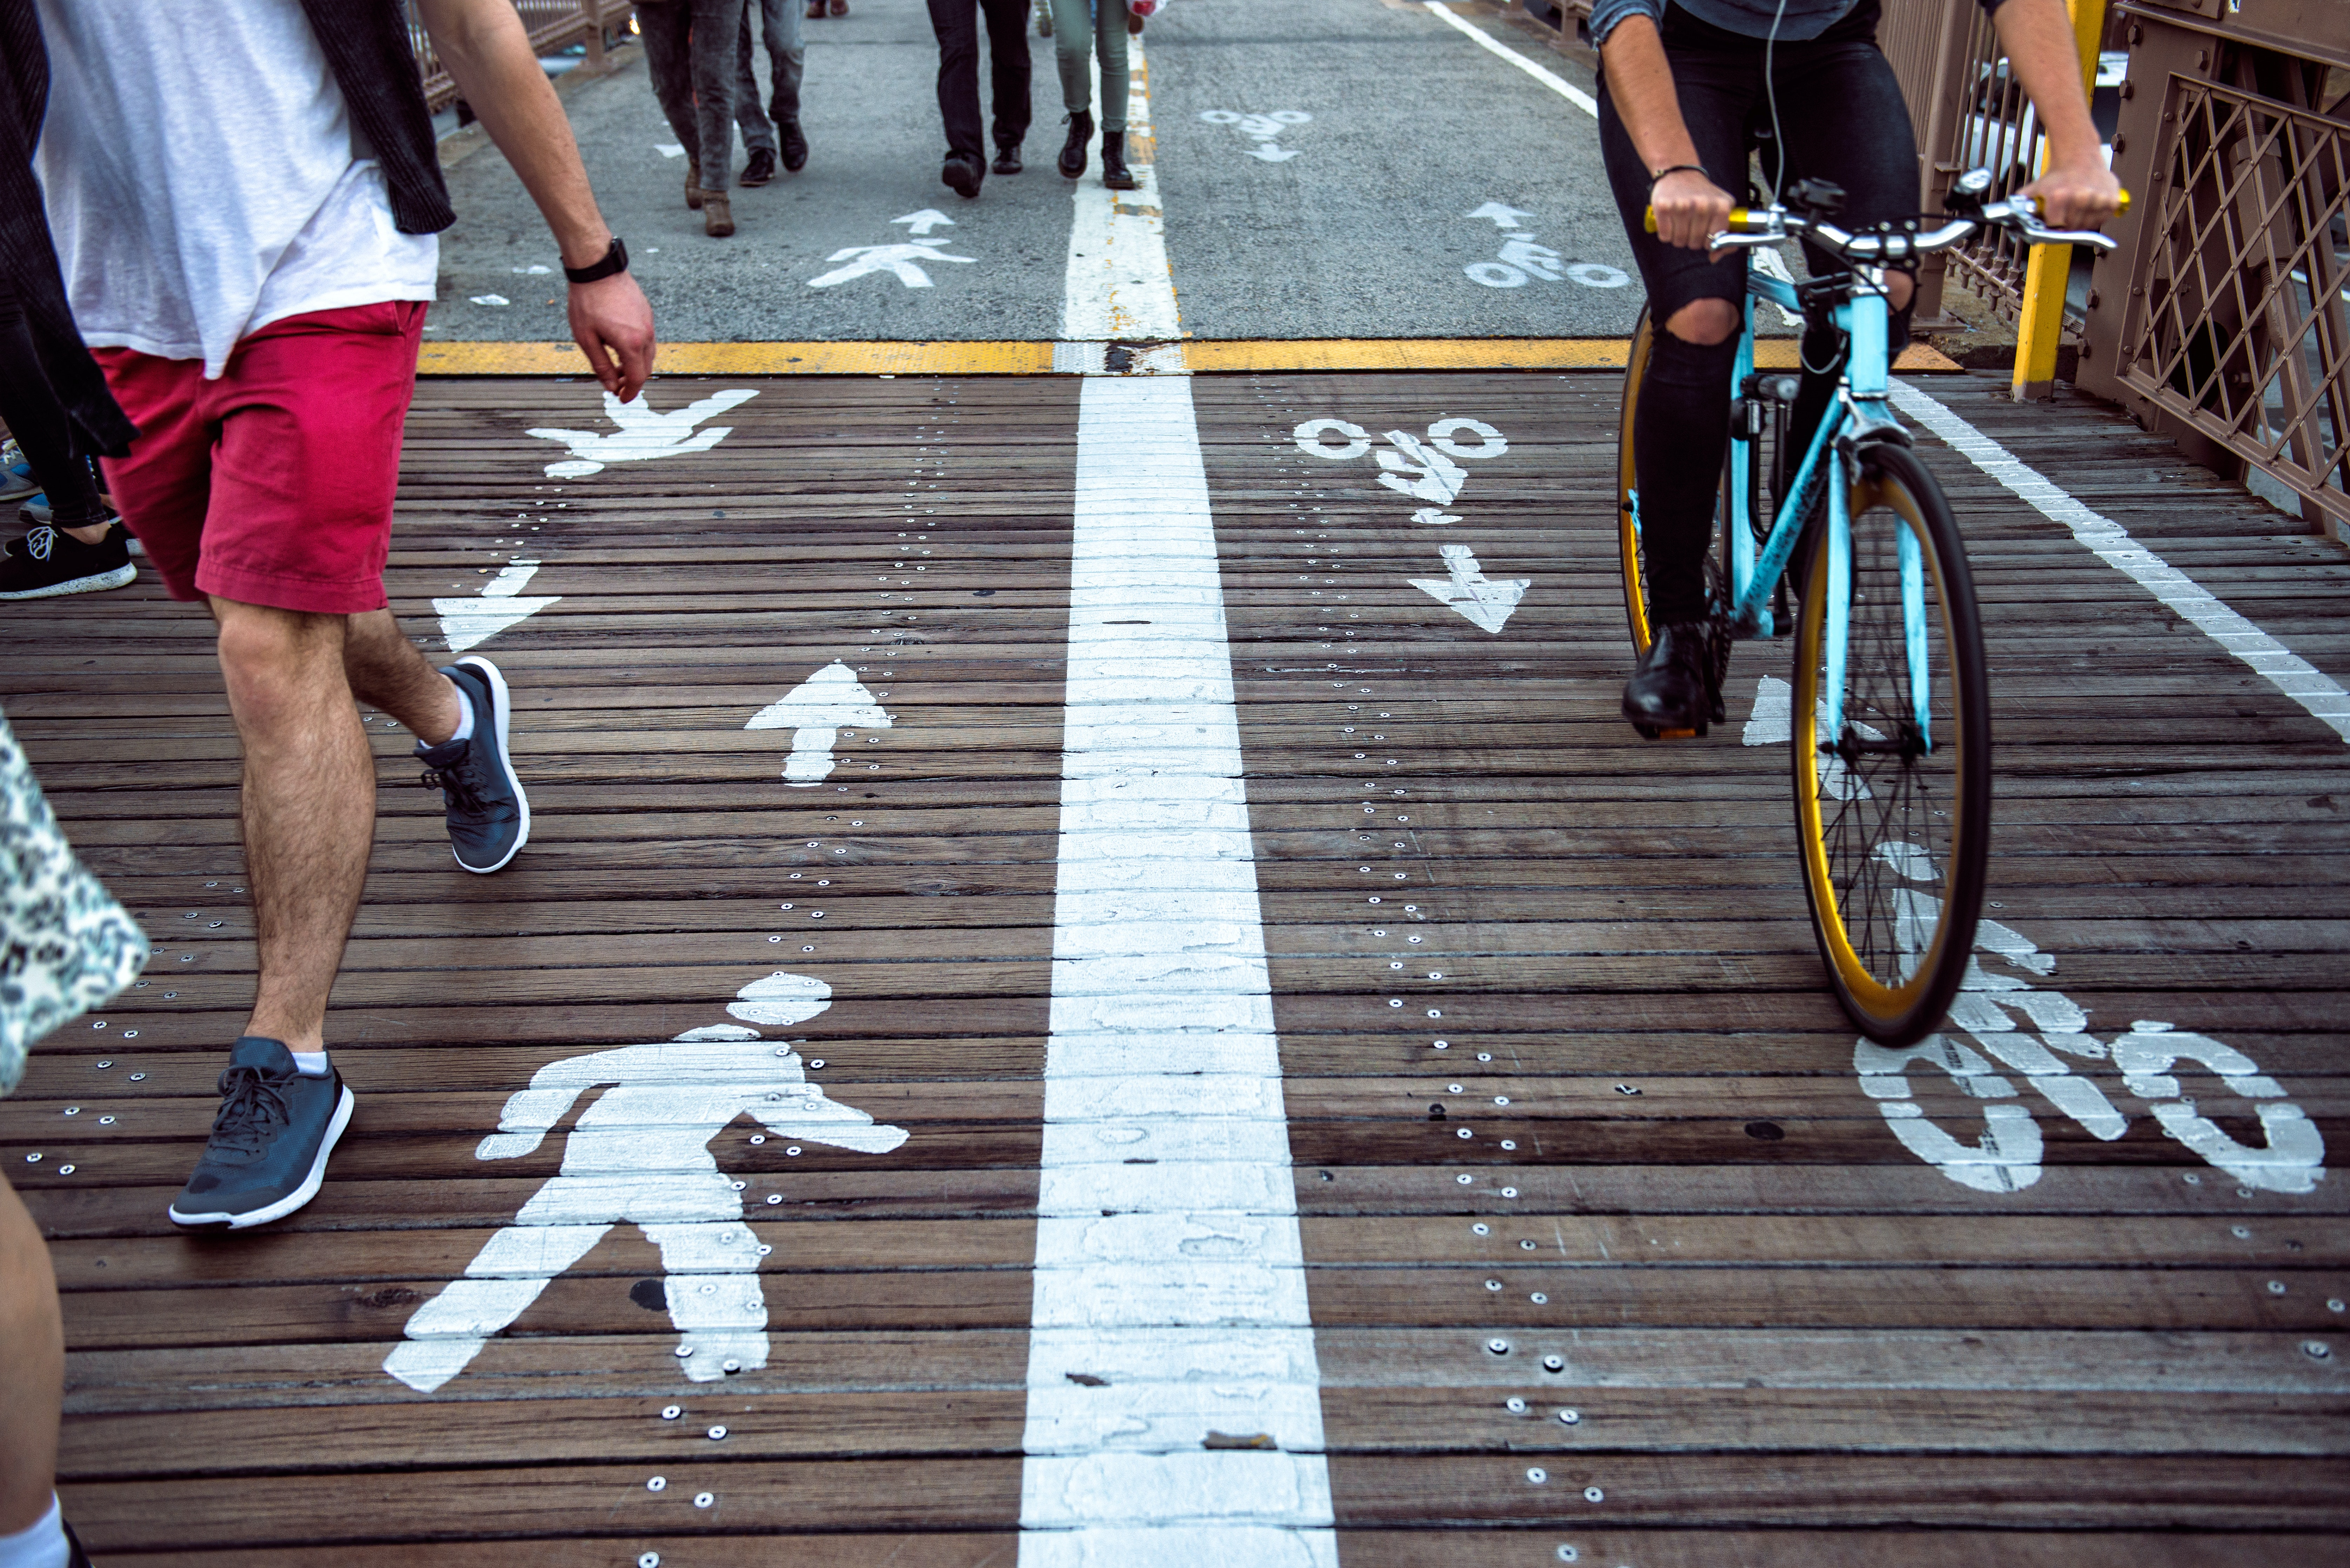 Reducing vehicle use by walking or cycling instead could have a major impact on air pollution levels.